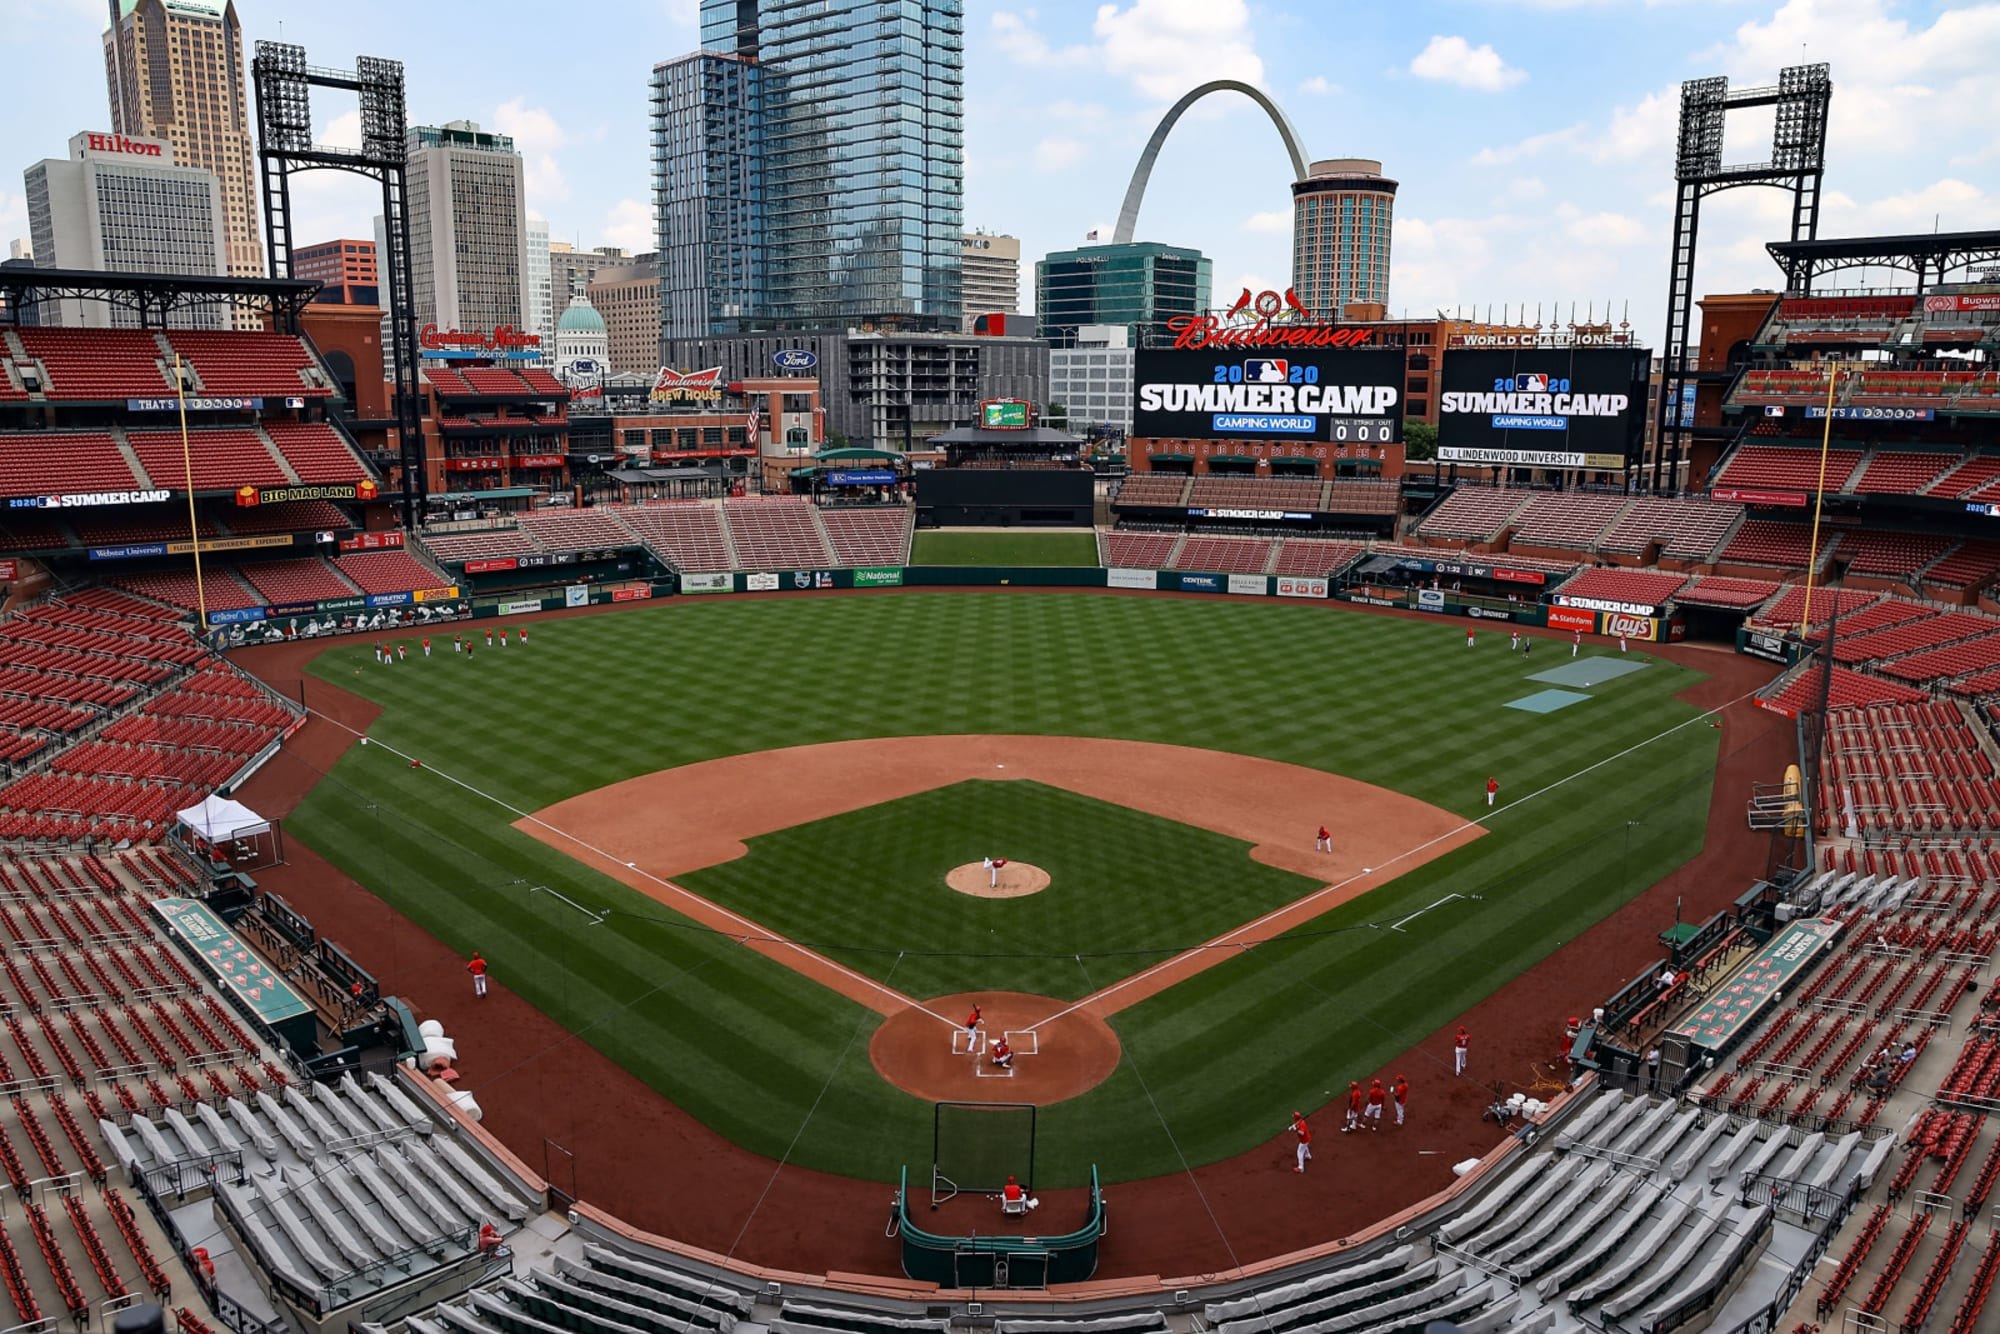 St. Louis Cardinals: Two wins and a loss in Springfield's roster